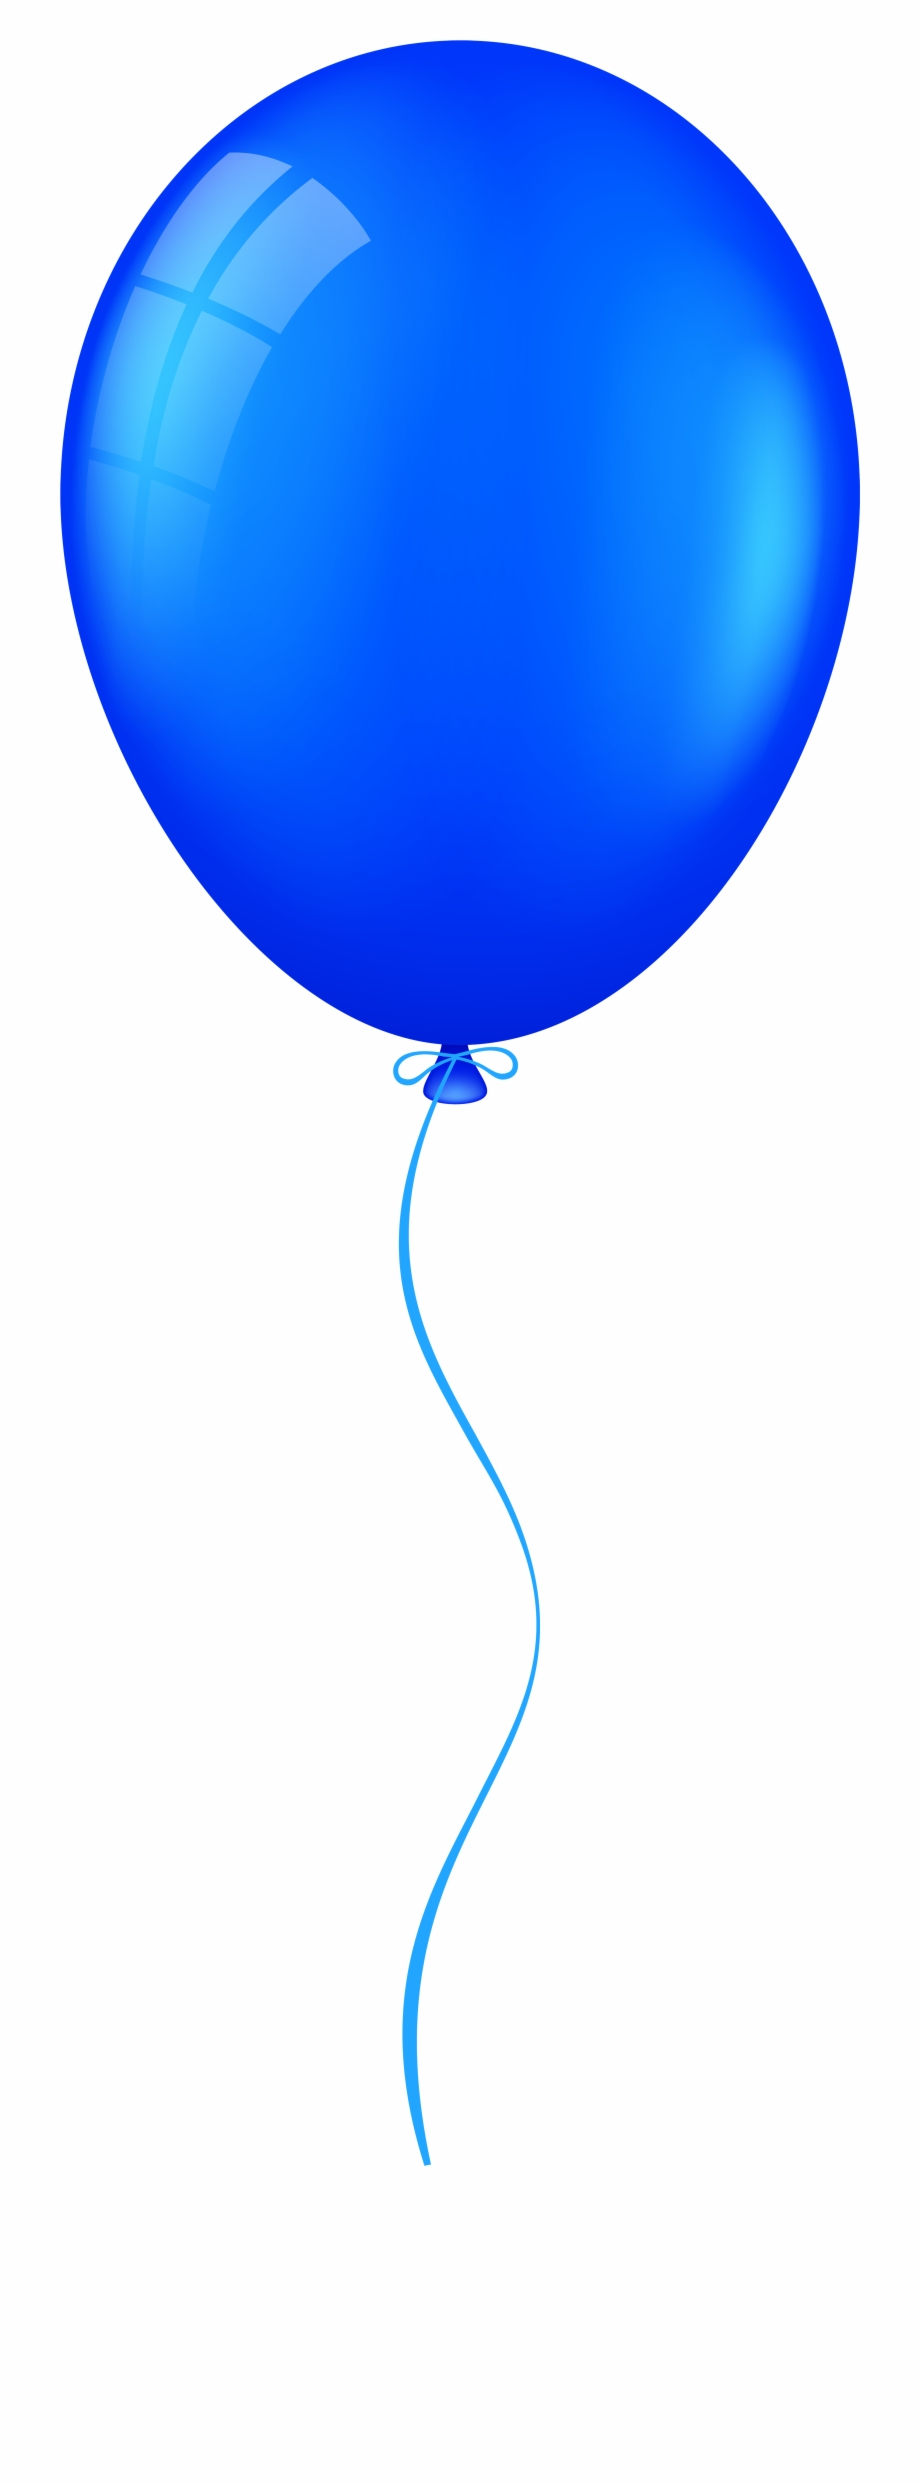 Balloon Clip Art With Transparent Background Free PNG Images.